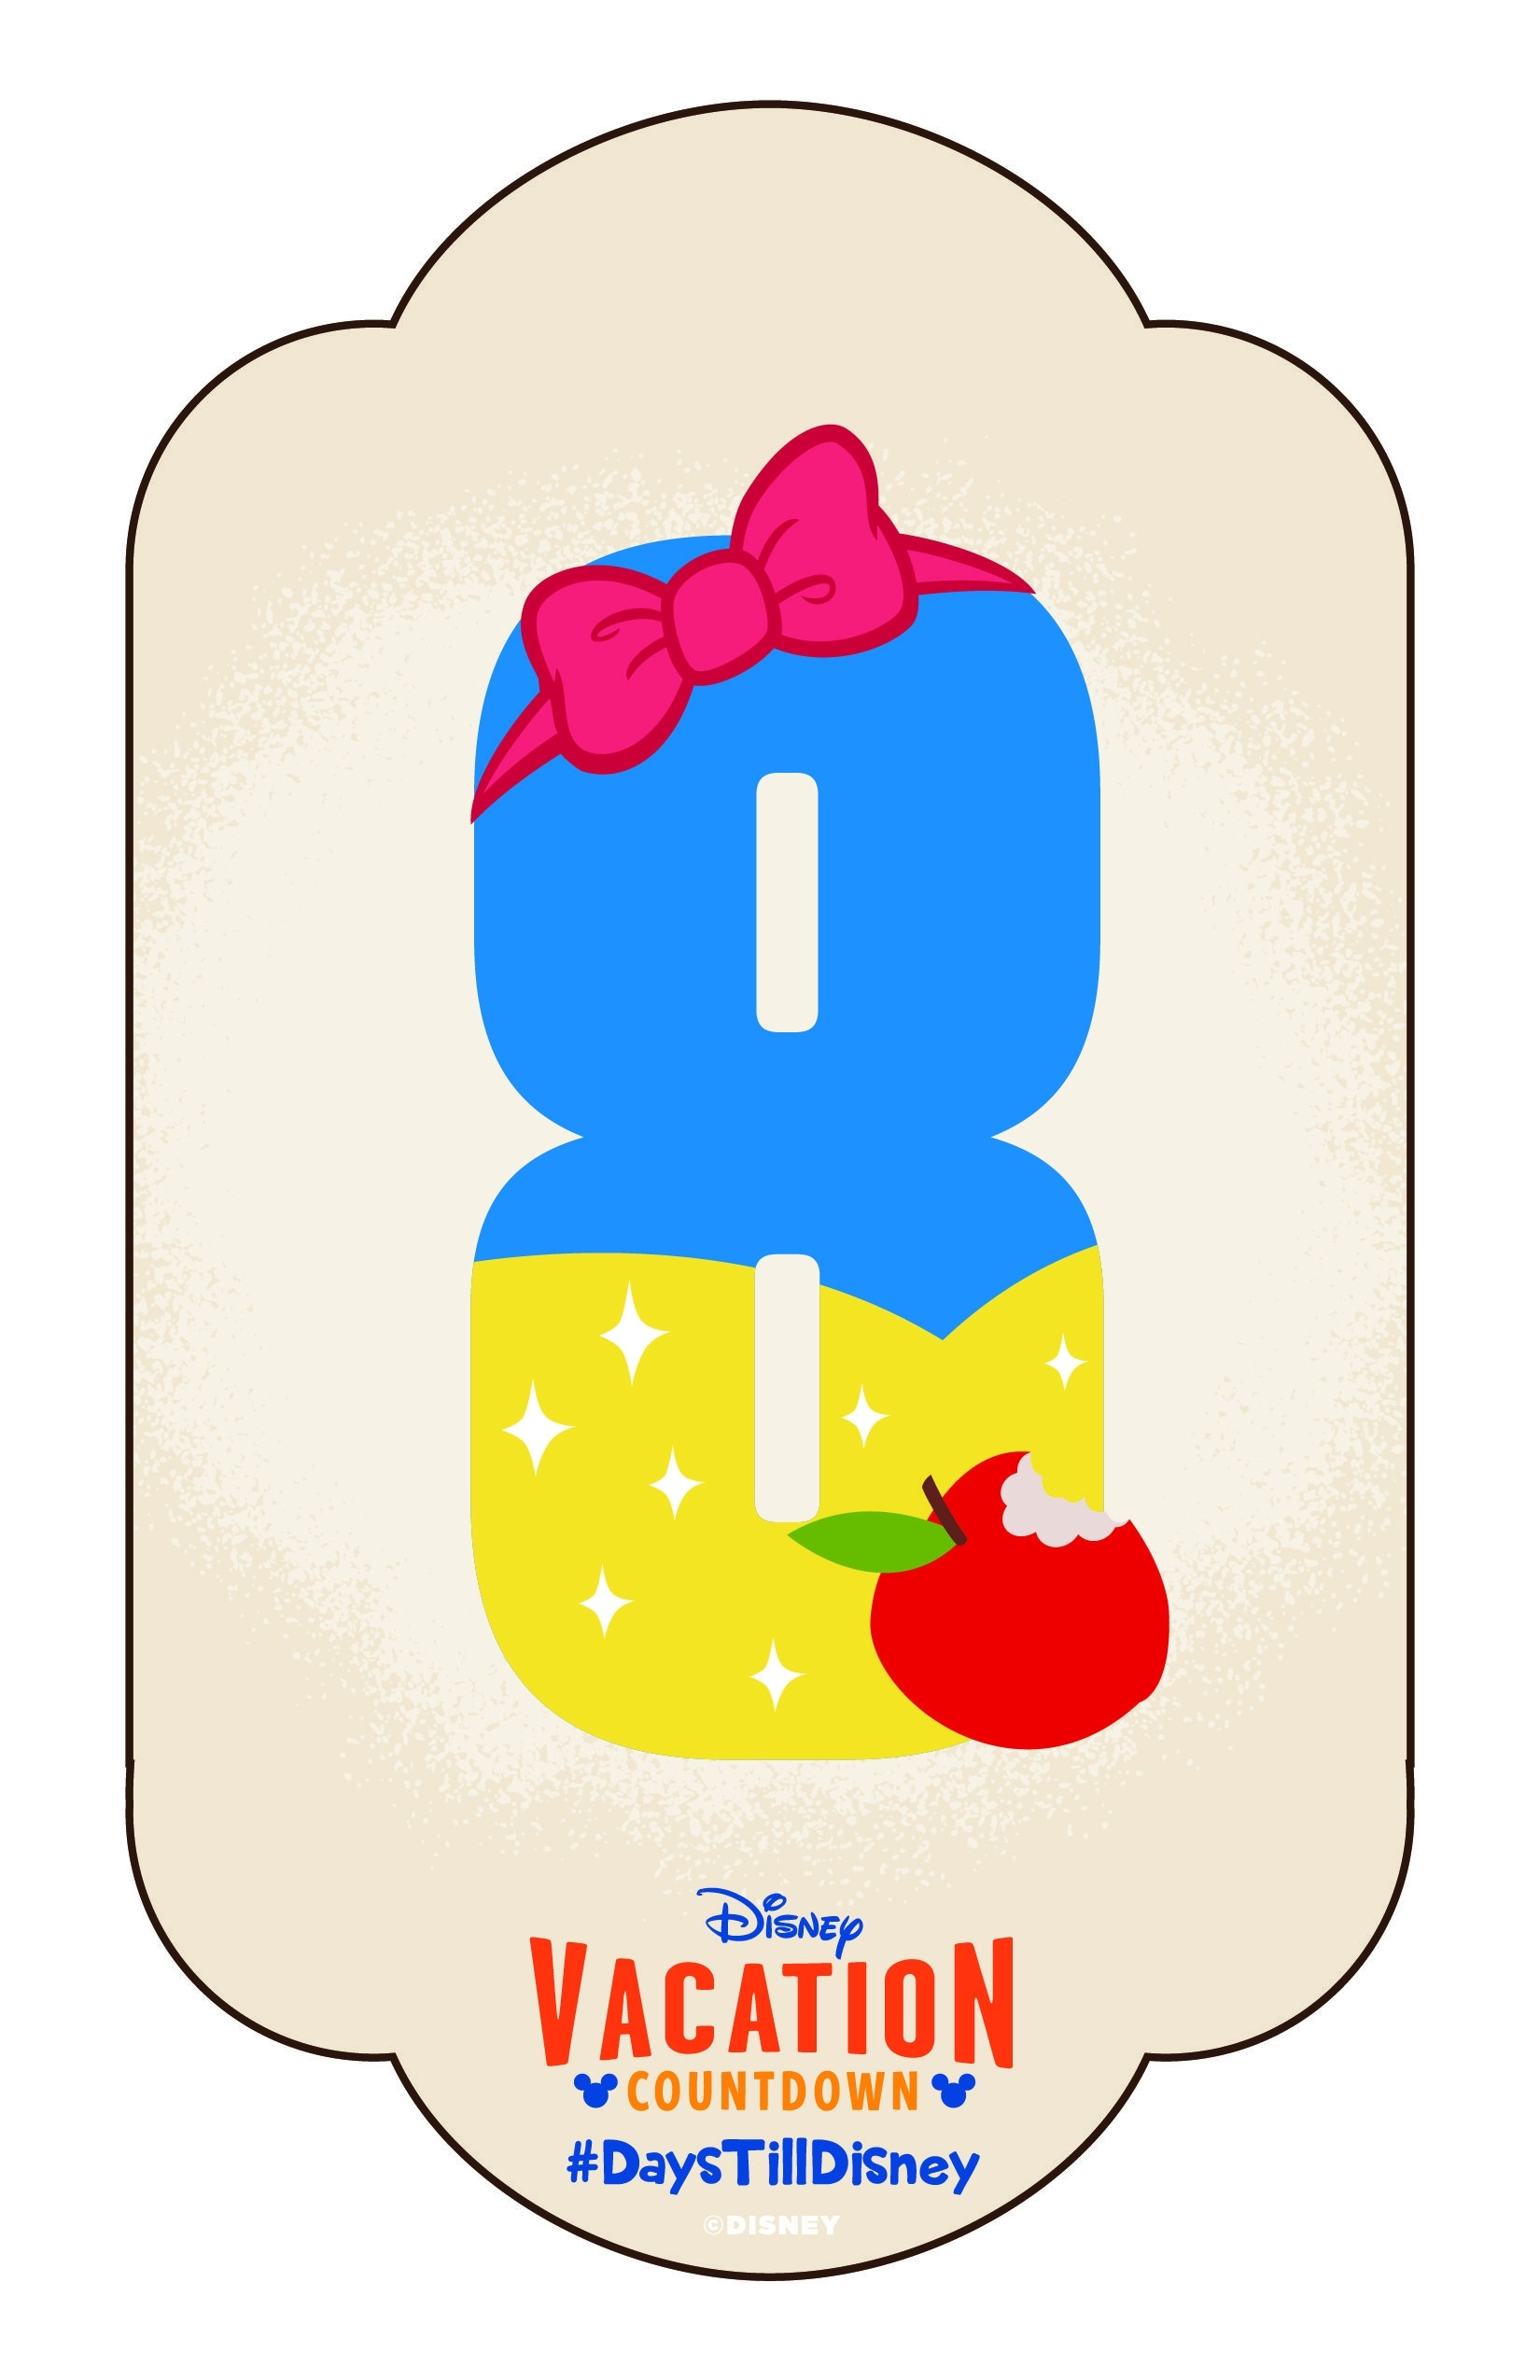 Diy: Create-Your-Own Walt Disney World Vacation Countdown regarding Disney Cruise Countdown Calendar Out Of Paper